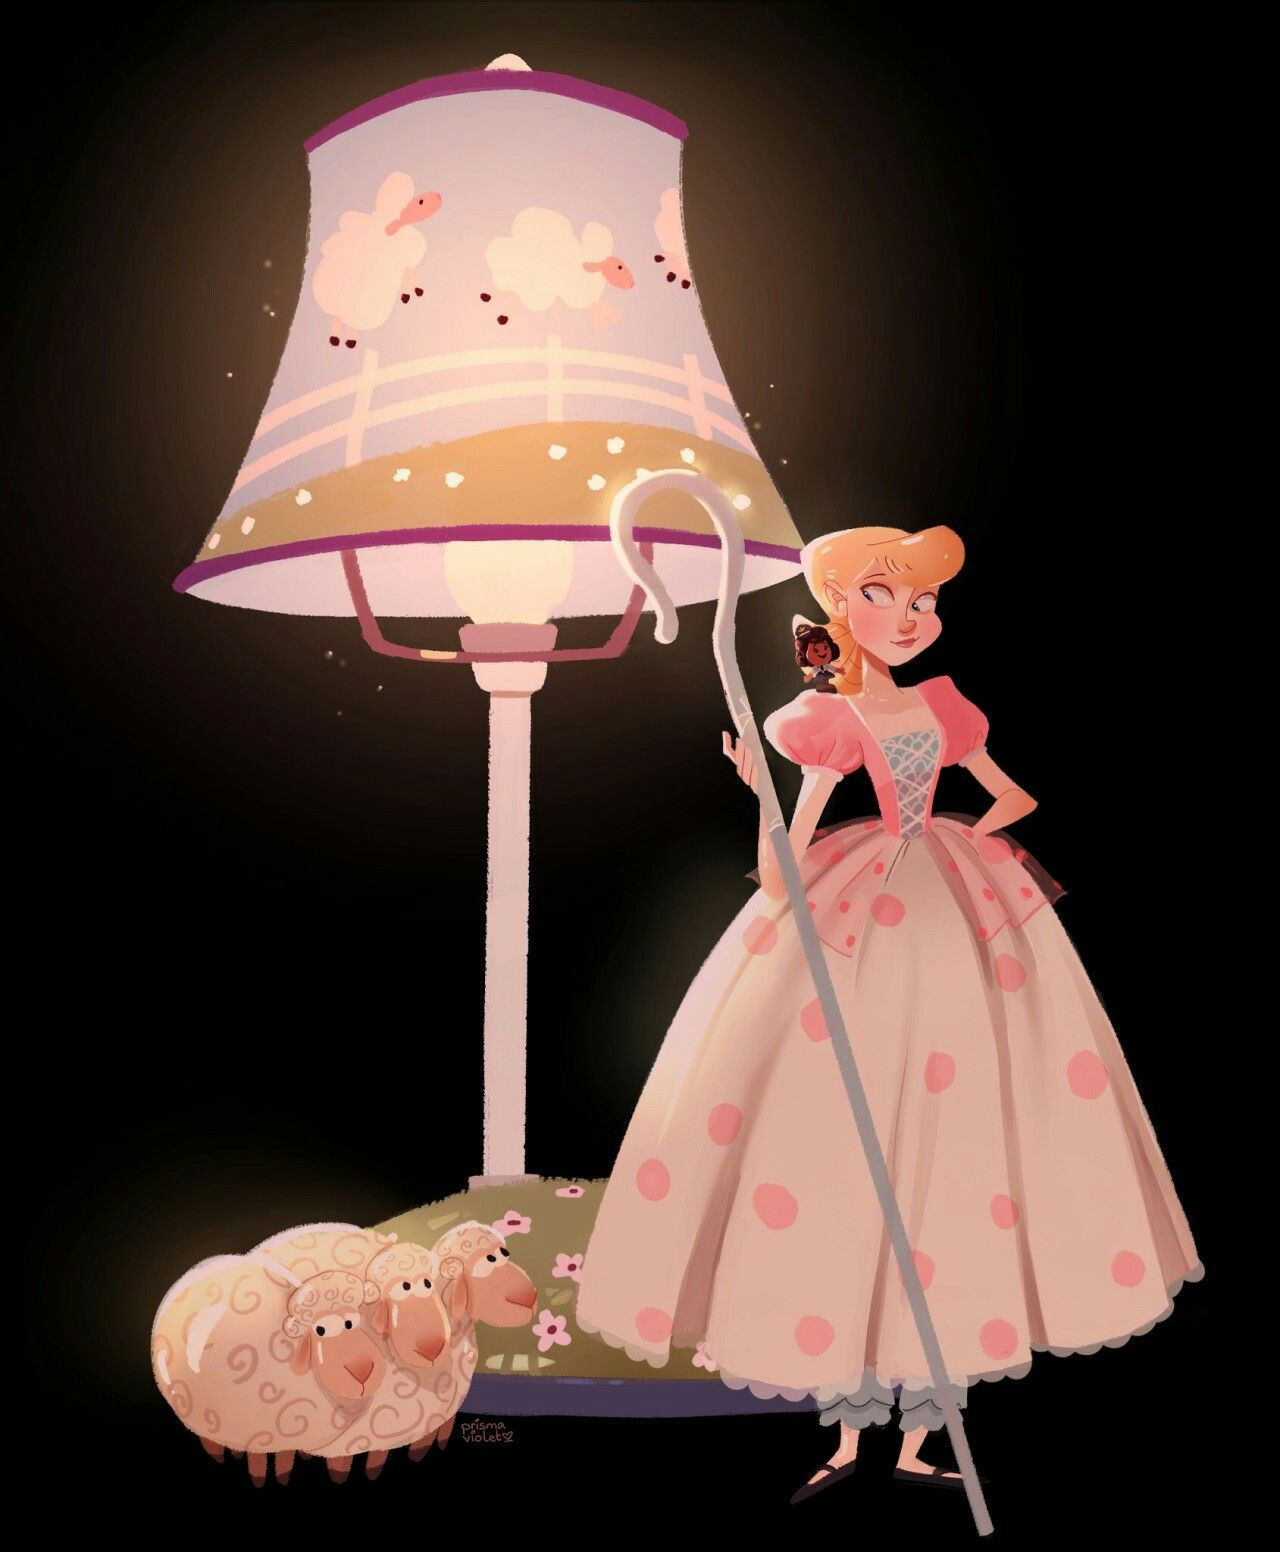 Pin By Emma Bull On Toy Story 1 2 3 4 In 2020 Lamp Disney And Dreamworks Short Film